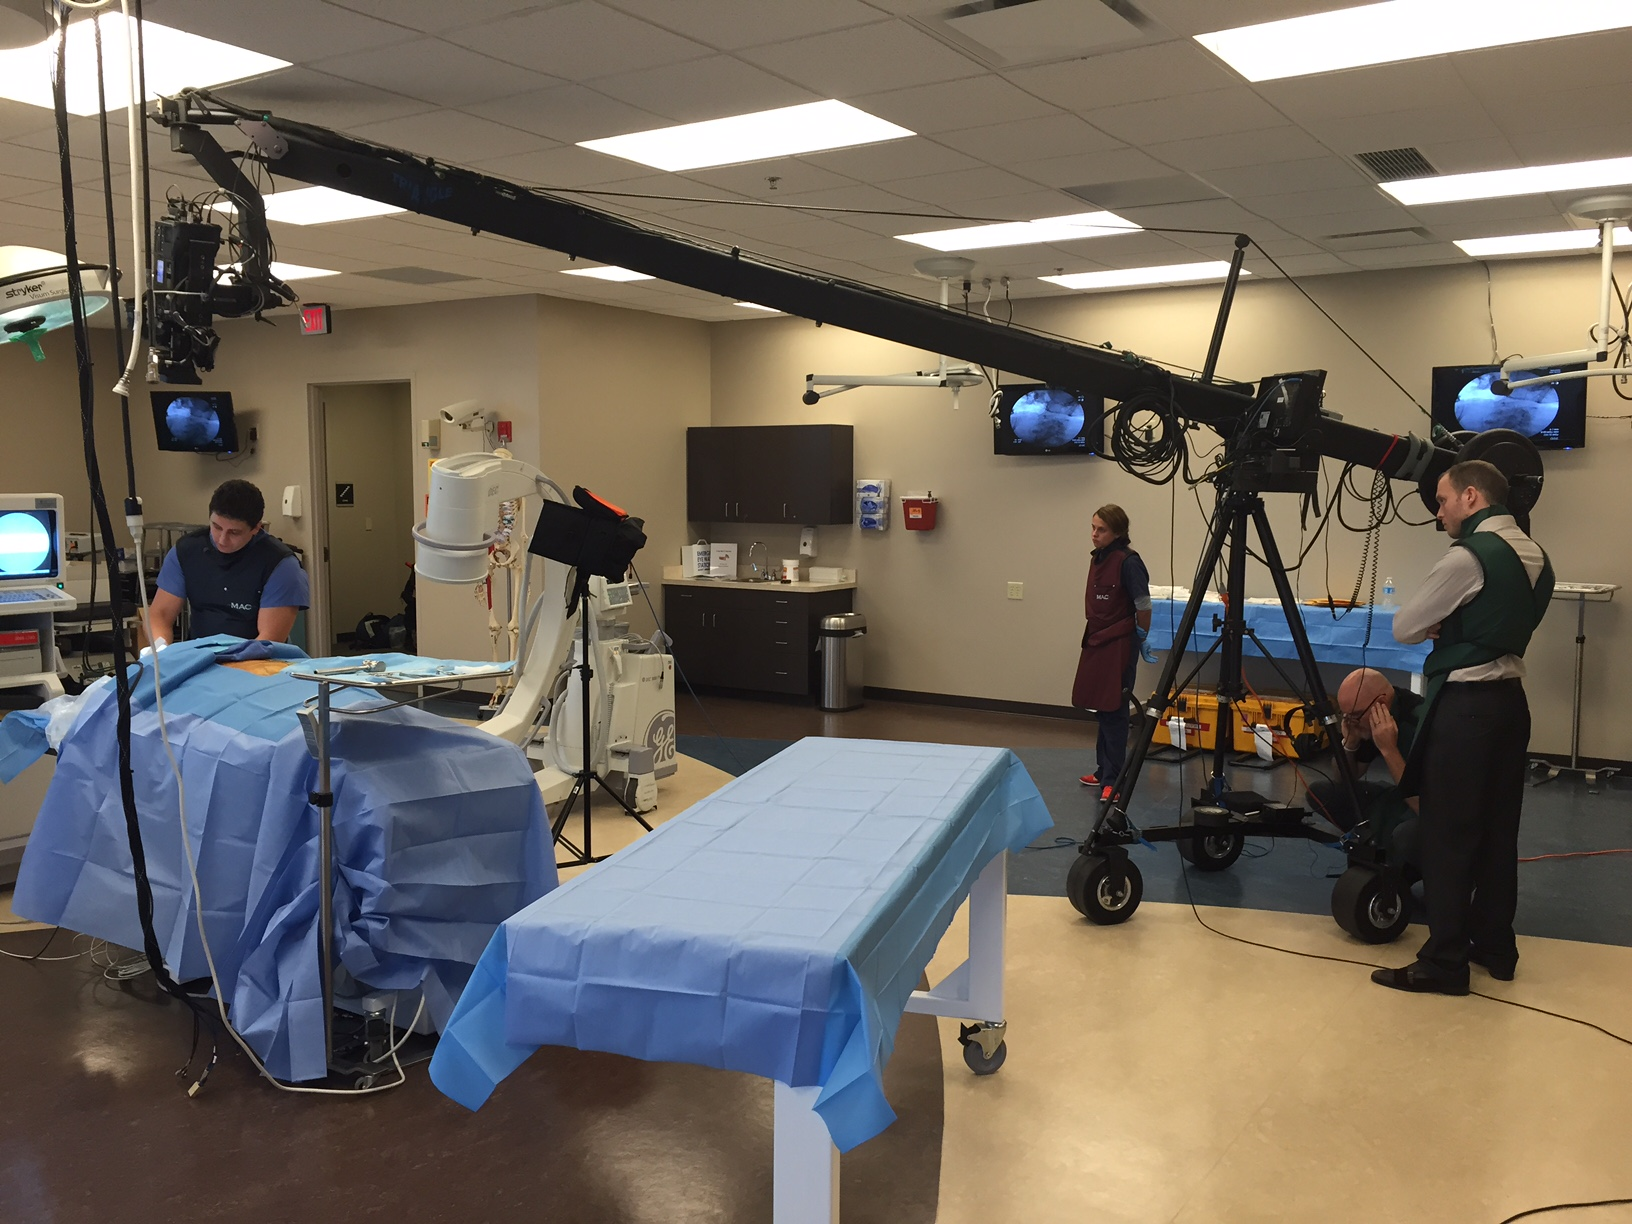 Using a jib to get up close and personal with a cadaver